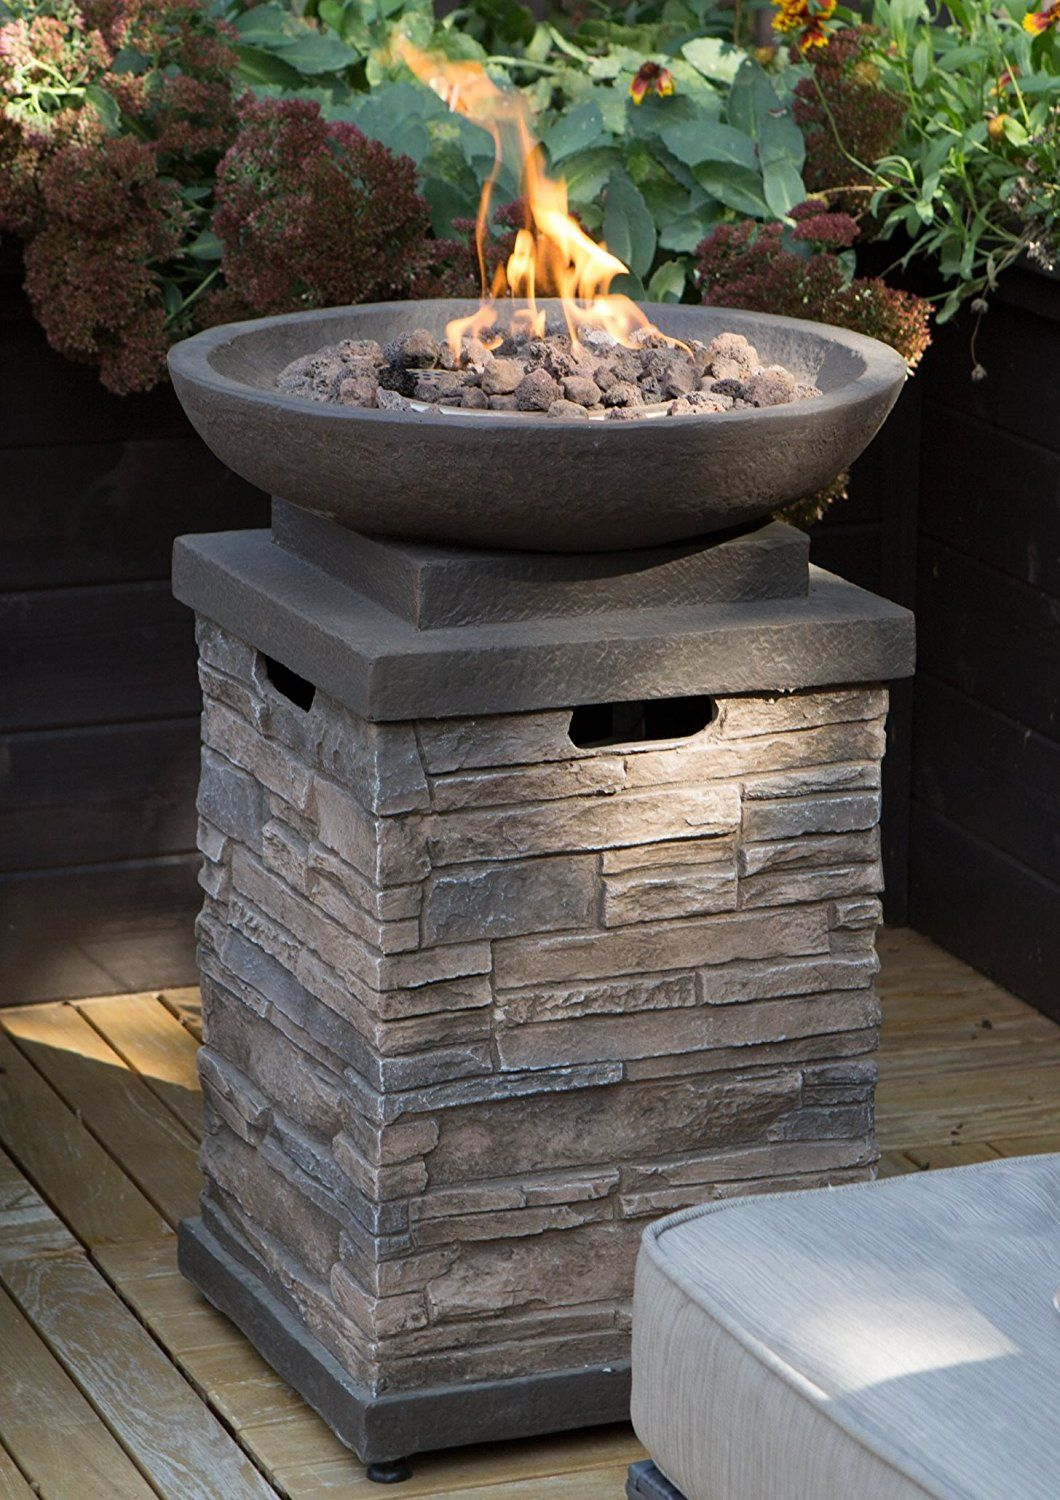 Realistic Stone Like Outdoor Patio Fire Pit Bowl With Free Cover Get Ready For Entertainment In Your Backyard Propane Fire Bowl Backyard Fire Propane Fire Pit